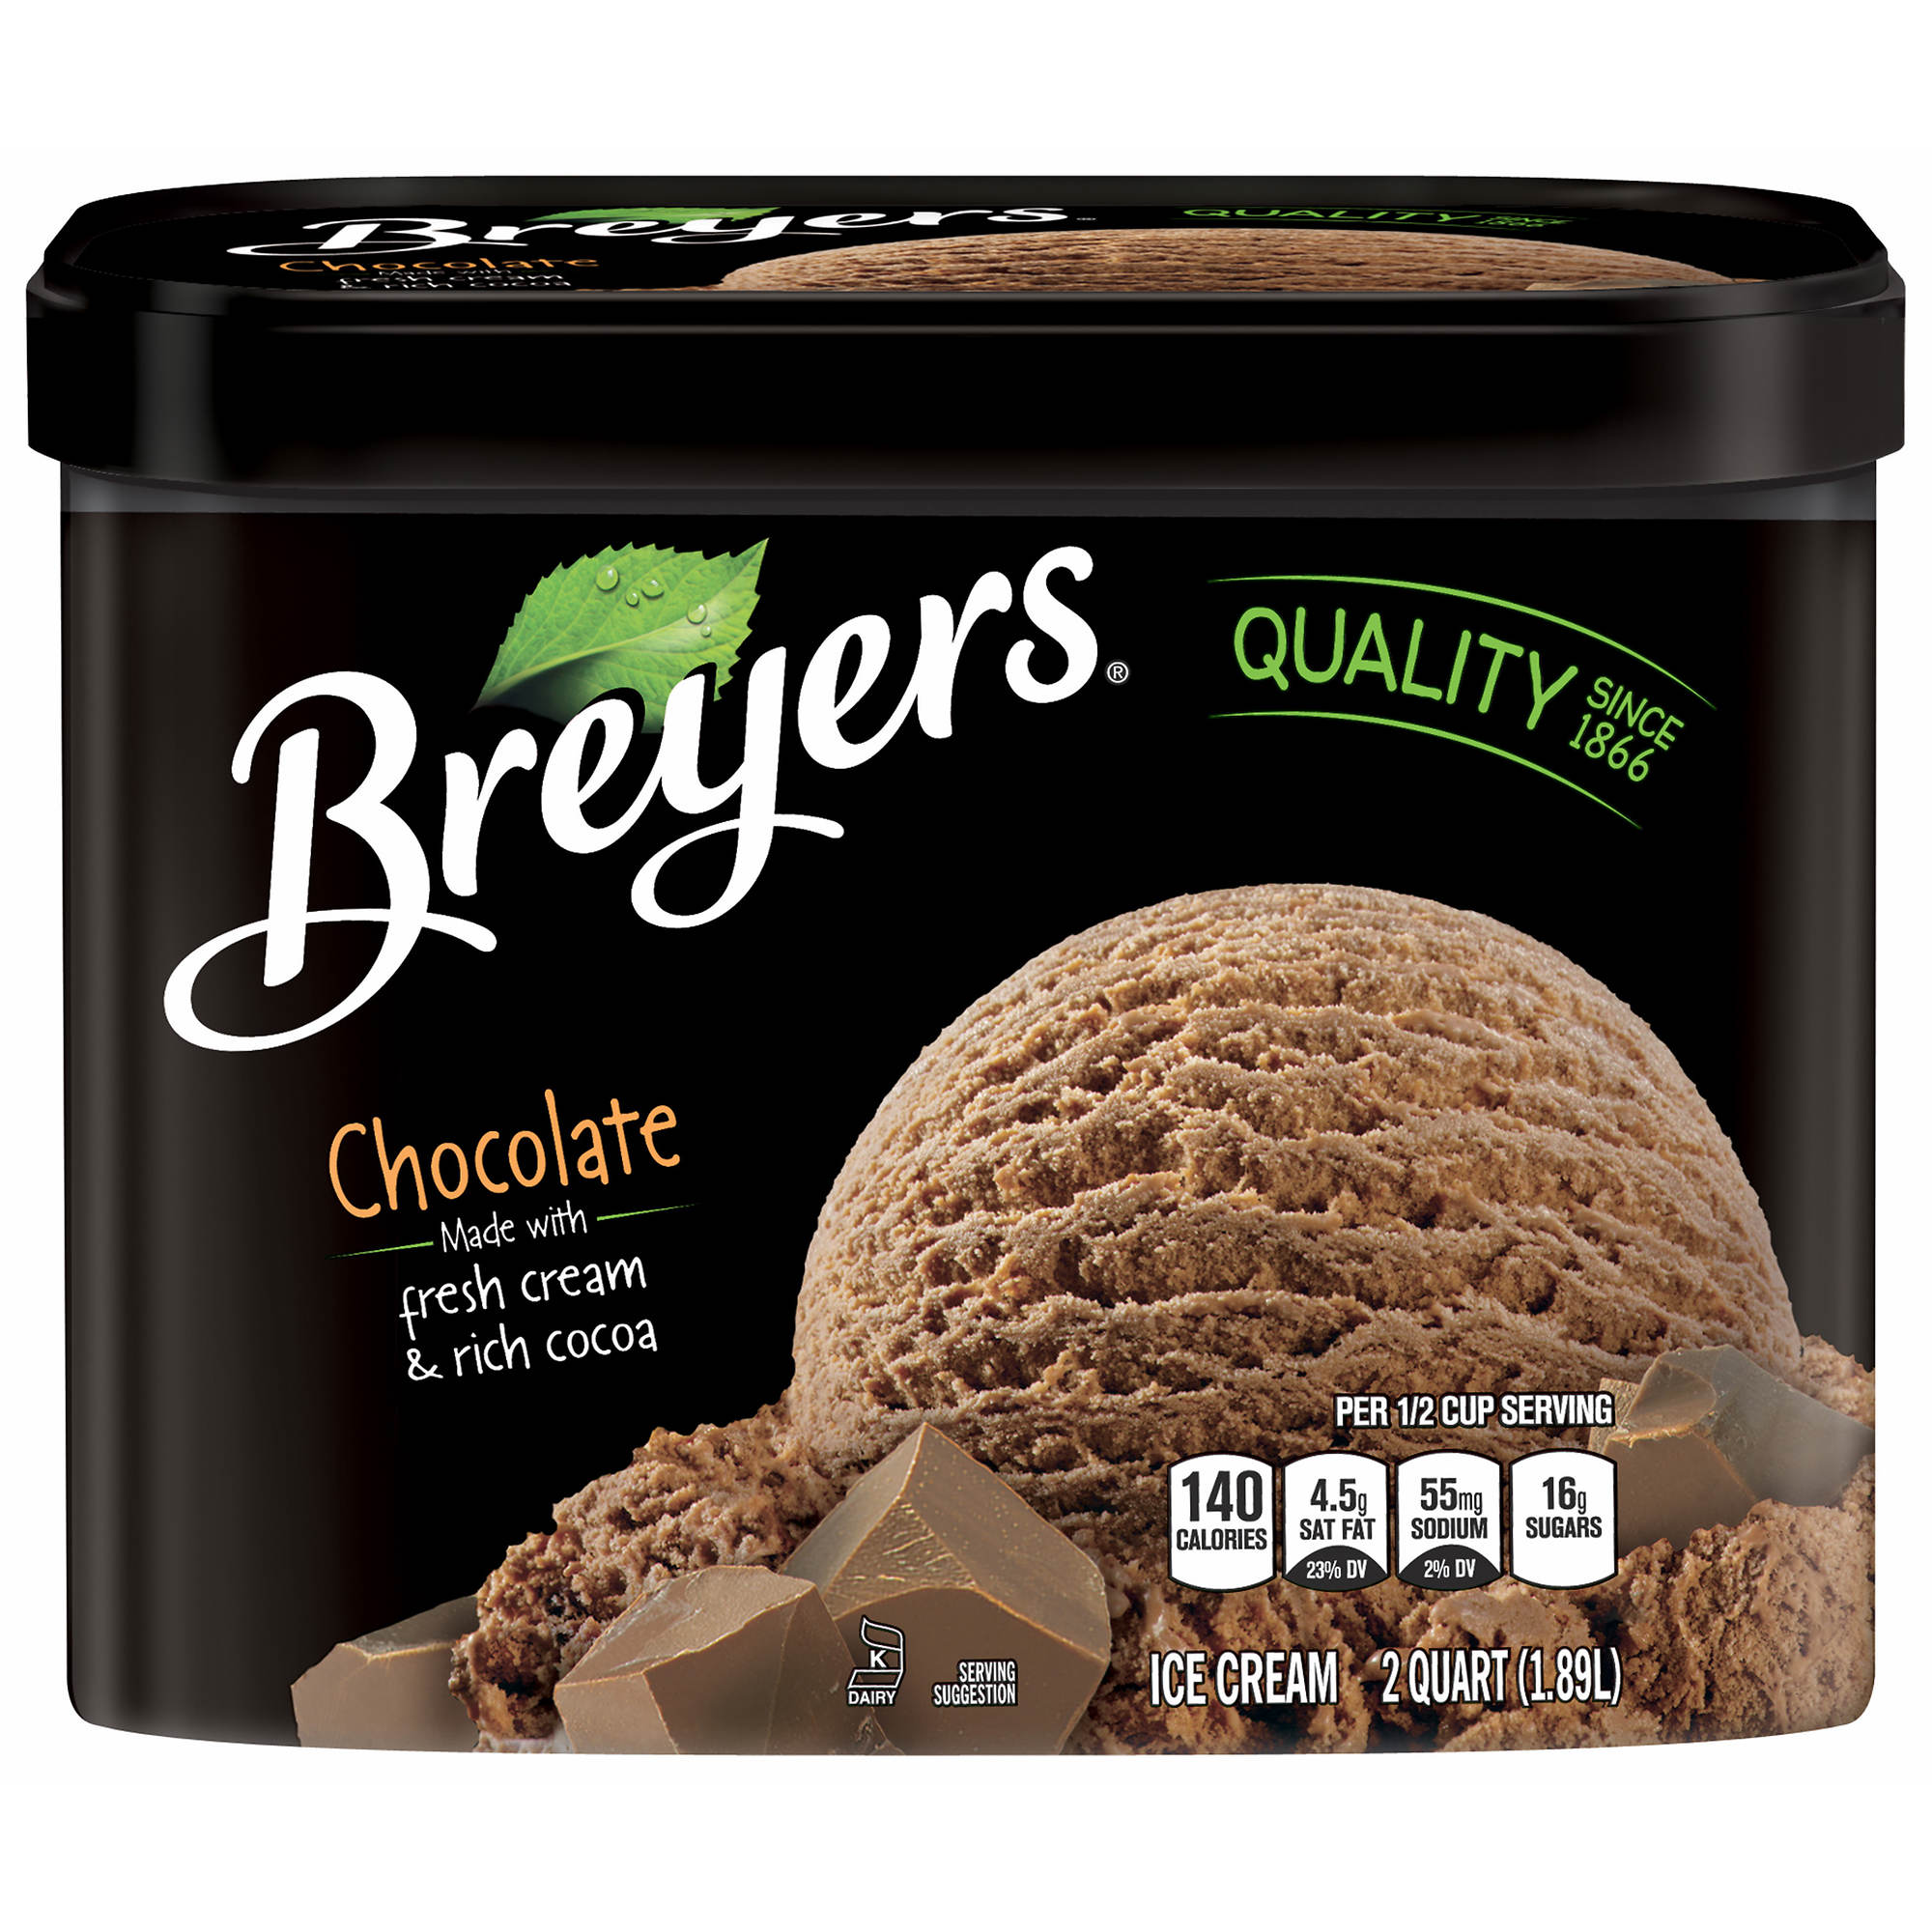 YES, THAT'S CALORIES PER TUB!